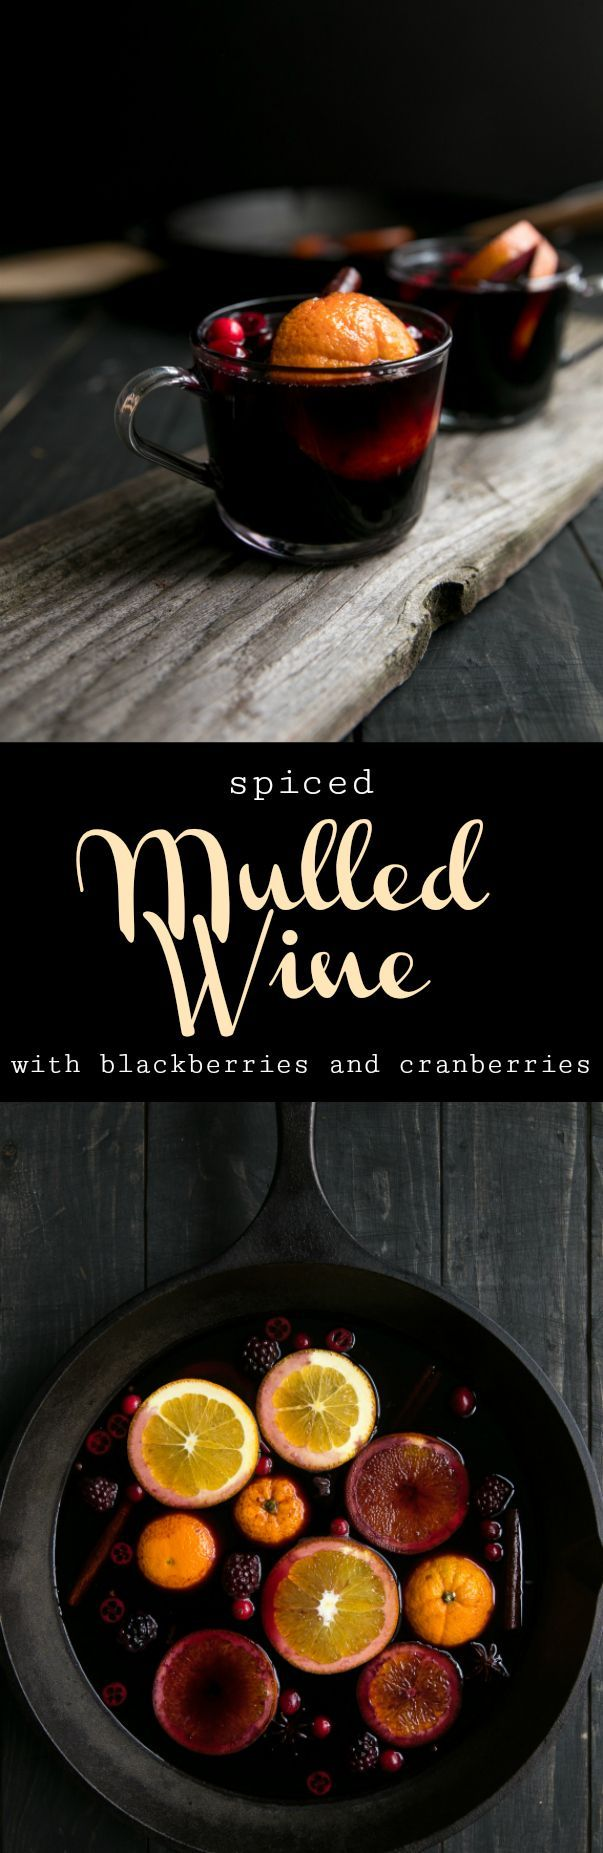 Spiced Mulled Wine with Blackberries and Cranberries #wine #mulledwine #christmas #holidays #alcohol #drinkstagram #recipe #thanksgiving